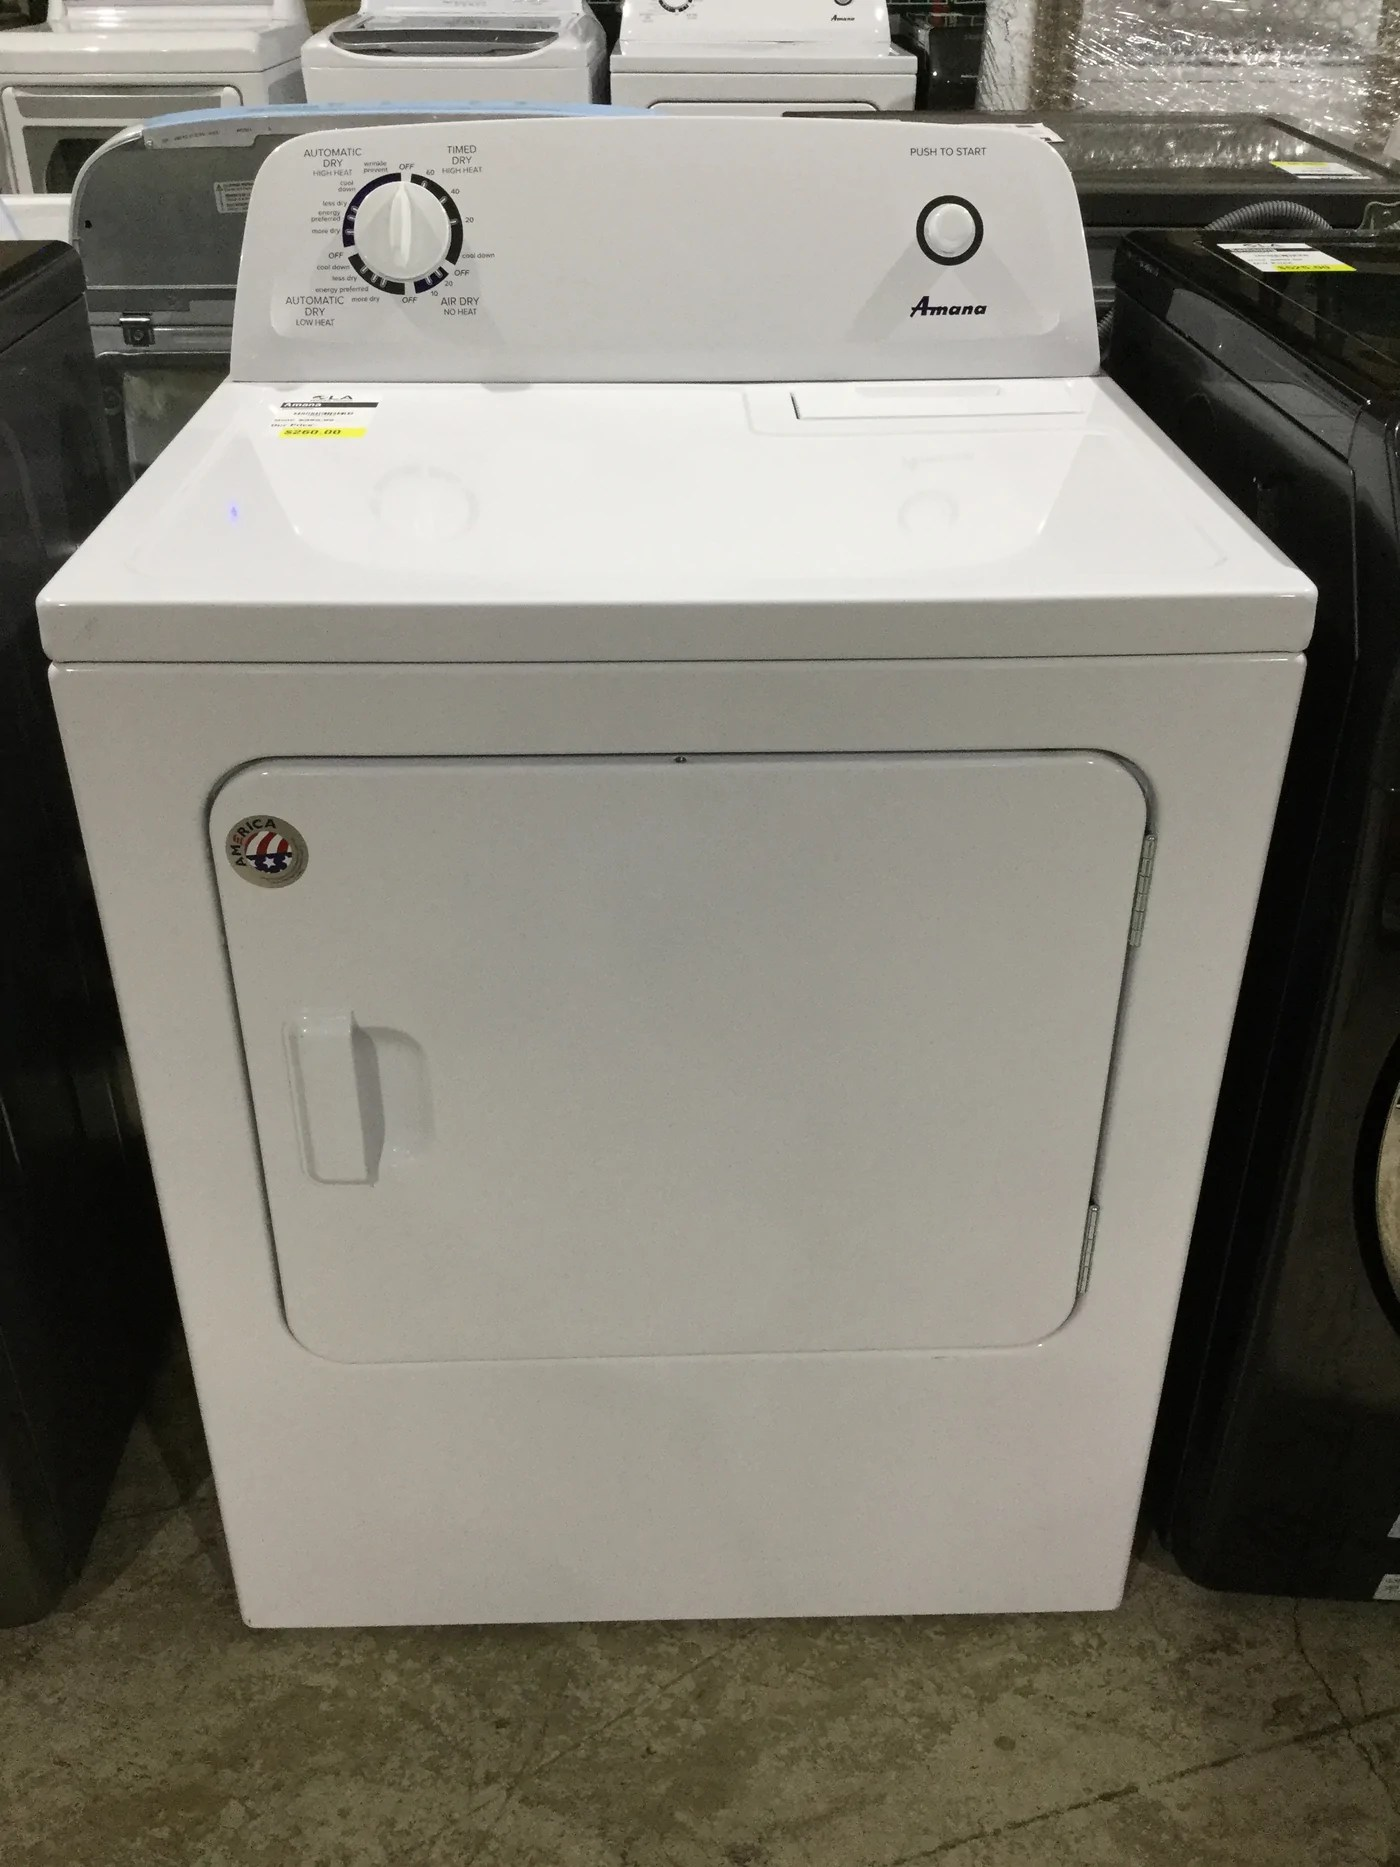 amana ned4655ew 6 5 cu ft 240 volt white electric vented dryer [ 1400 x 1867 Pixel ]